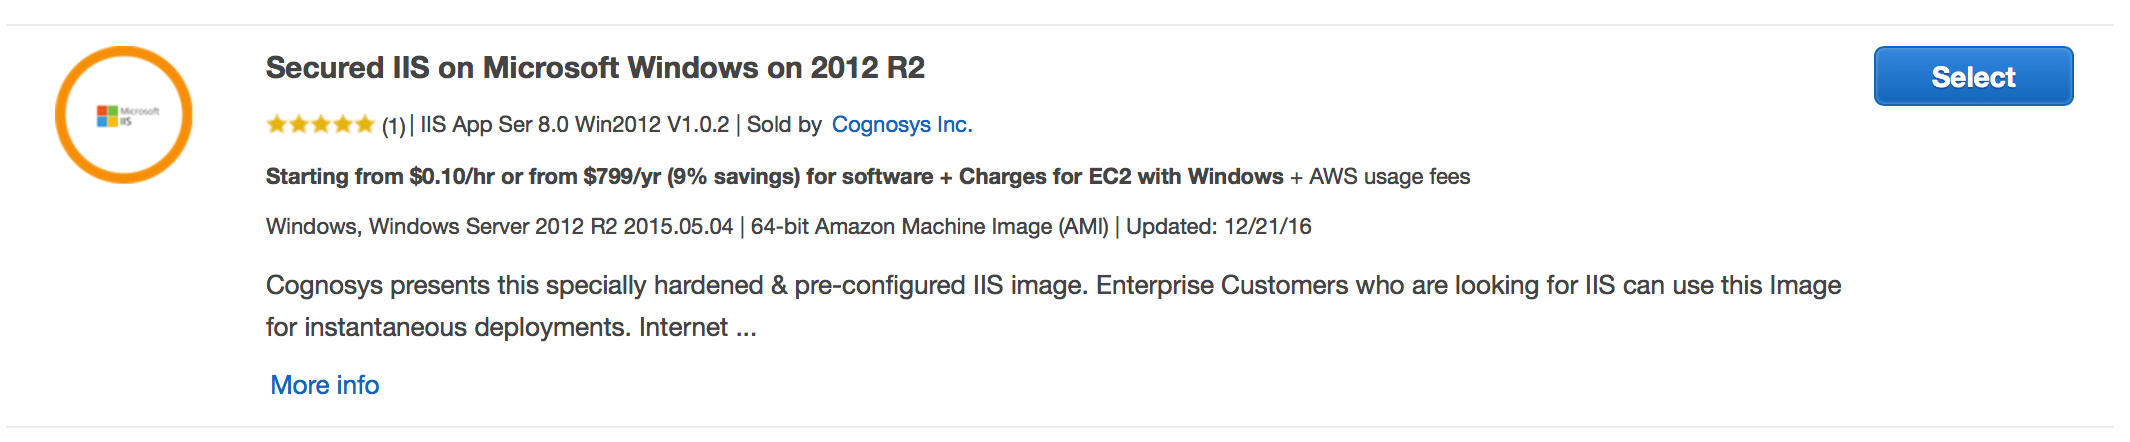 Getting Started with the Amazon EC2 AMI - 24x7ITConnection